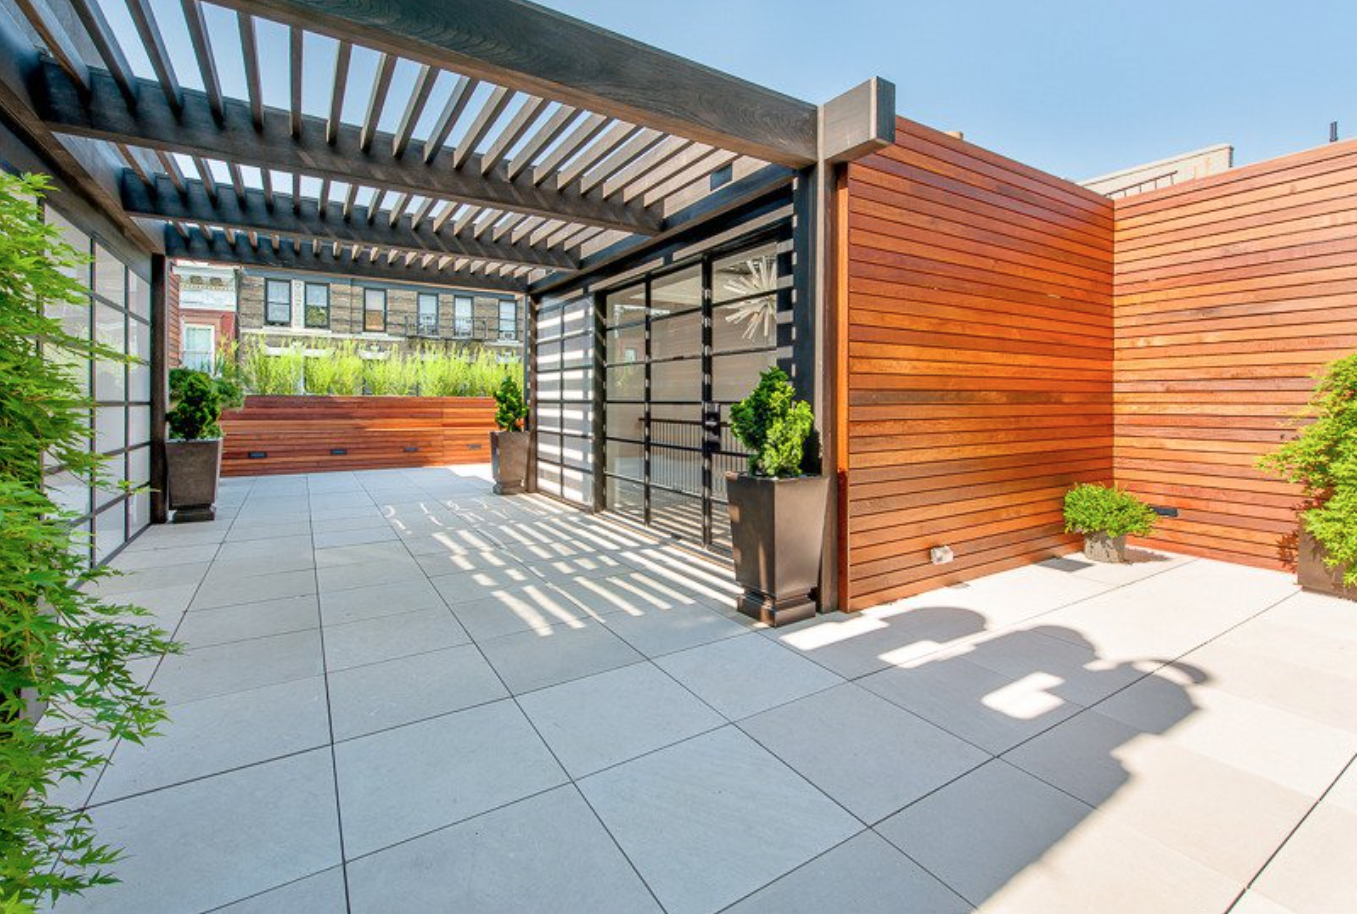 The rooftop deck is a convenient outdoor space with built-in smart technology.